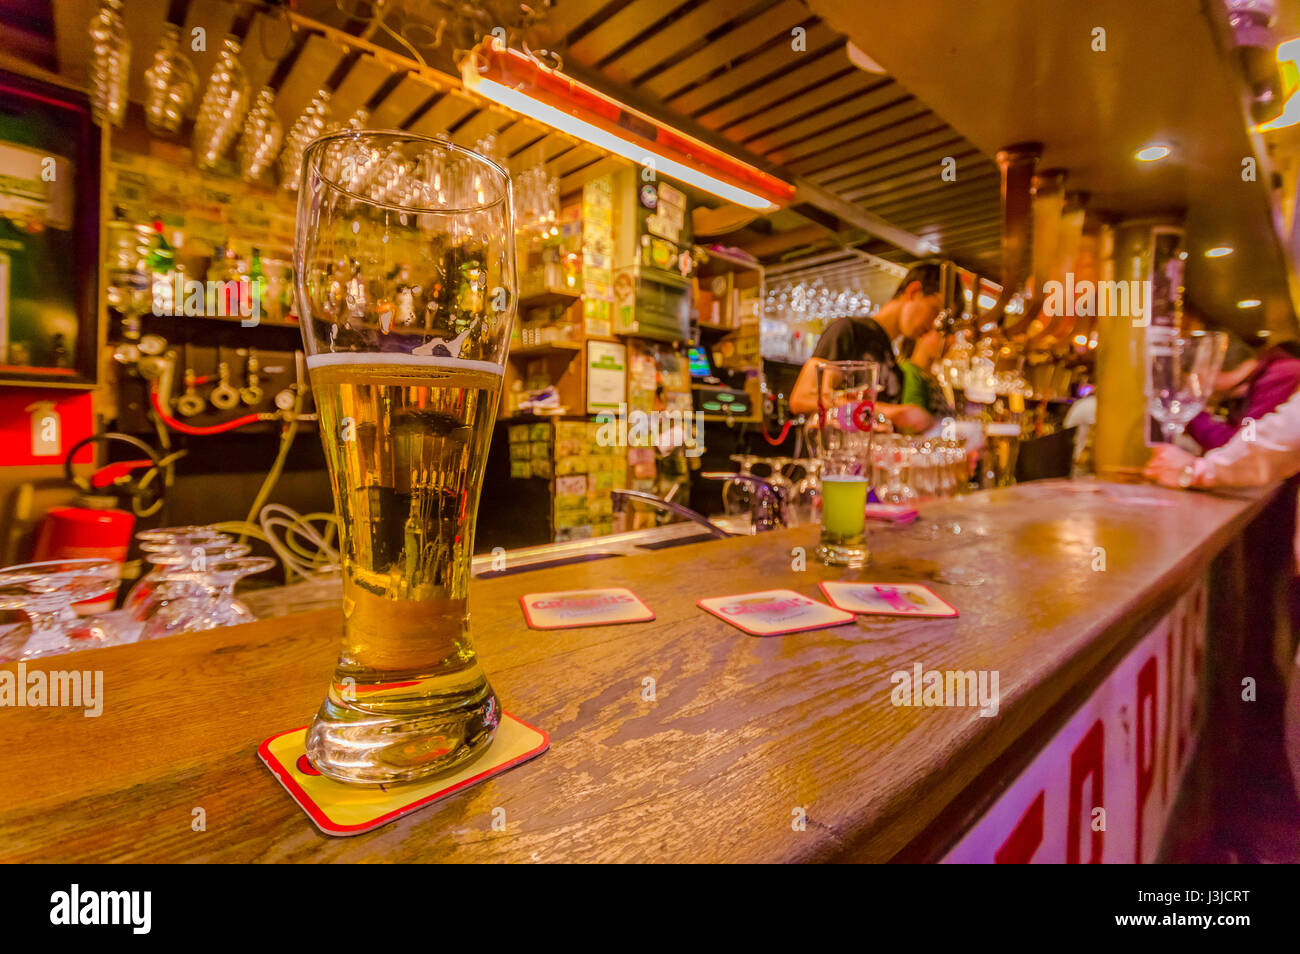 BRUSSELS, BELGIUM - 11 AUGUST, 2015: Glass of beer sitting on bar counter inside Delirium Bar, selection of other Stock Photo